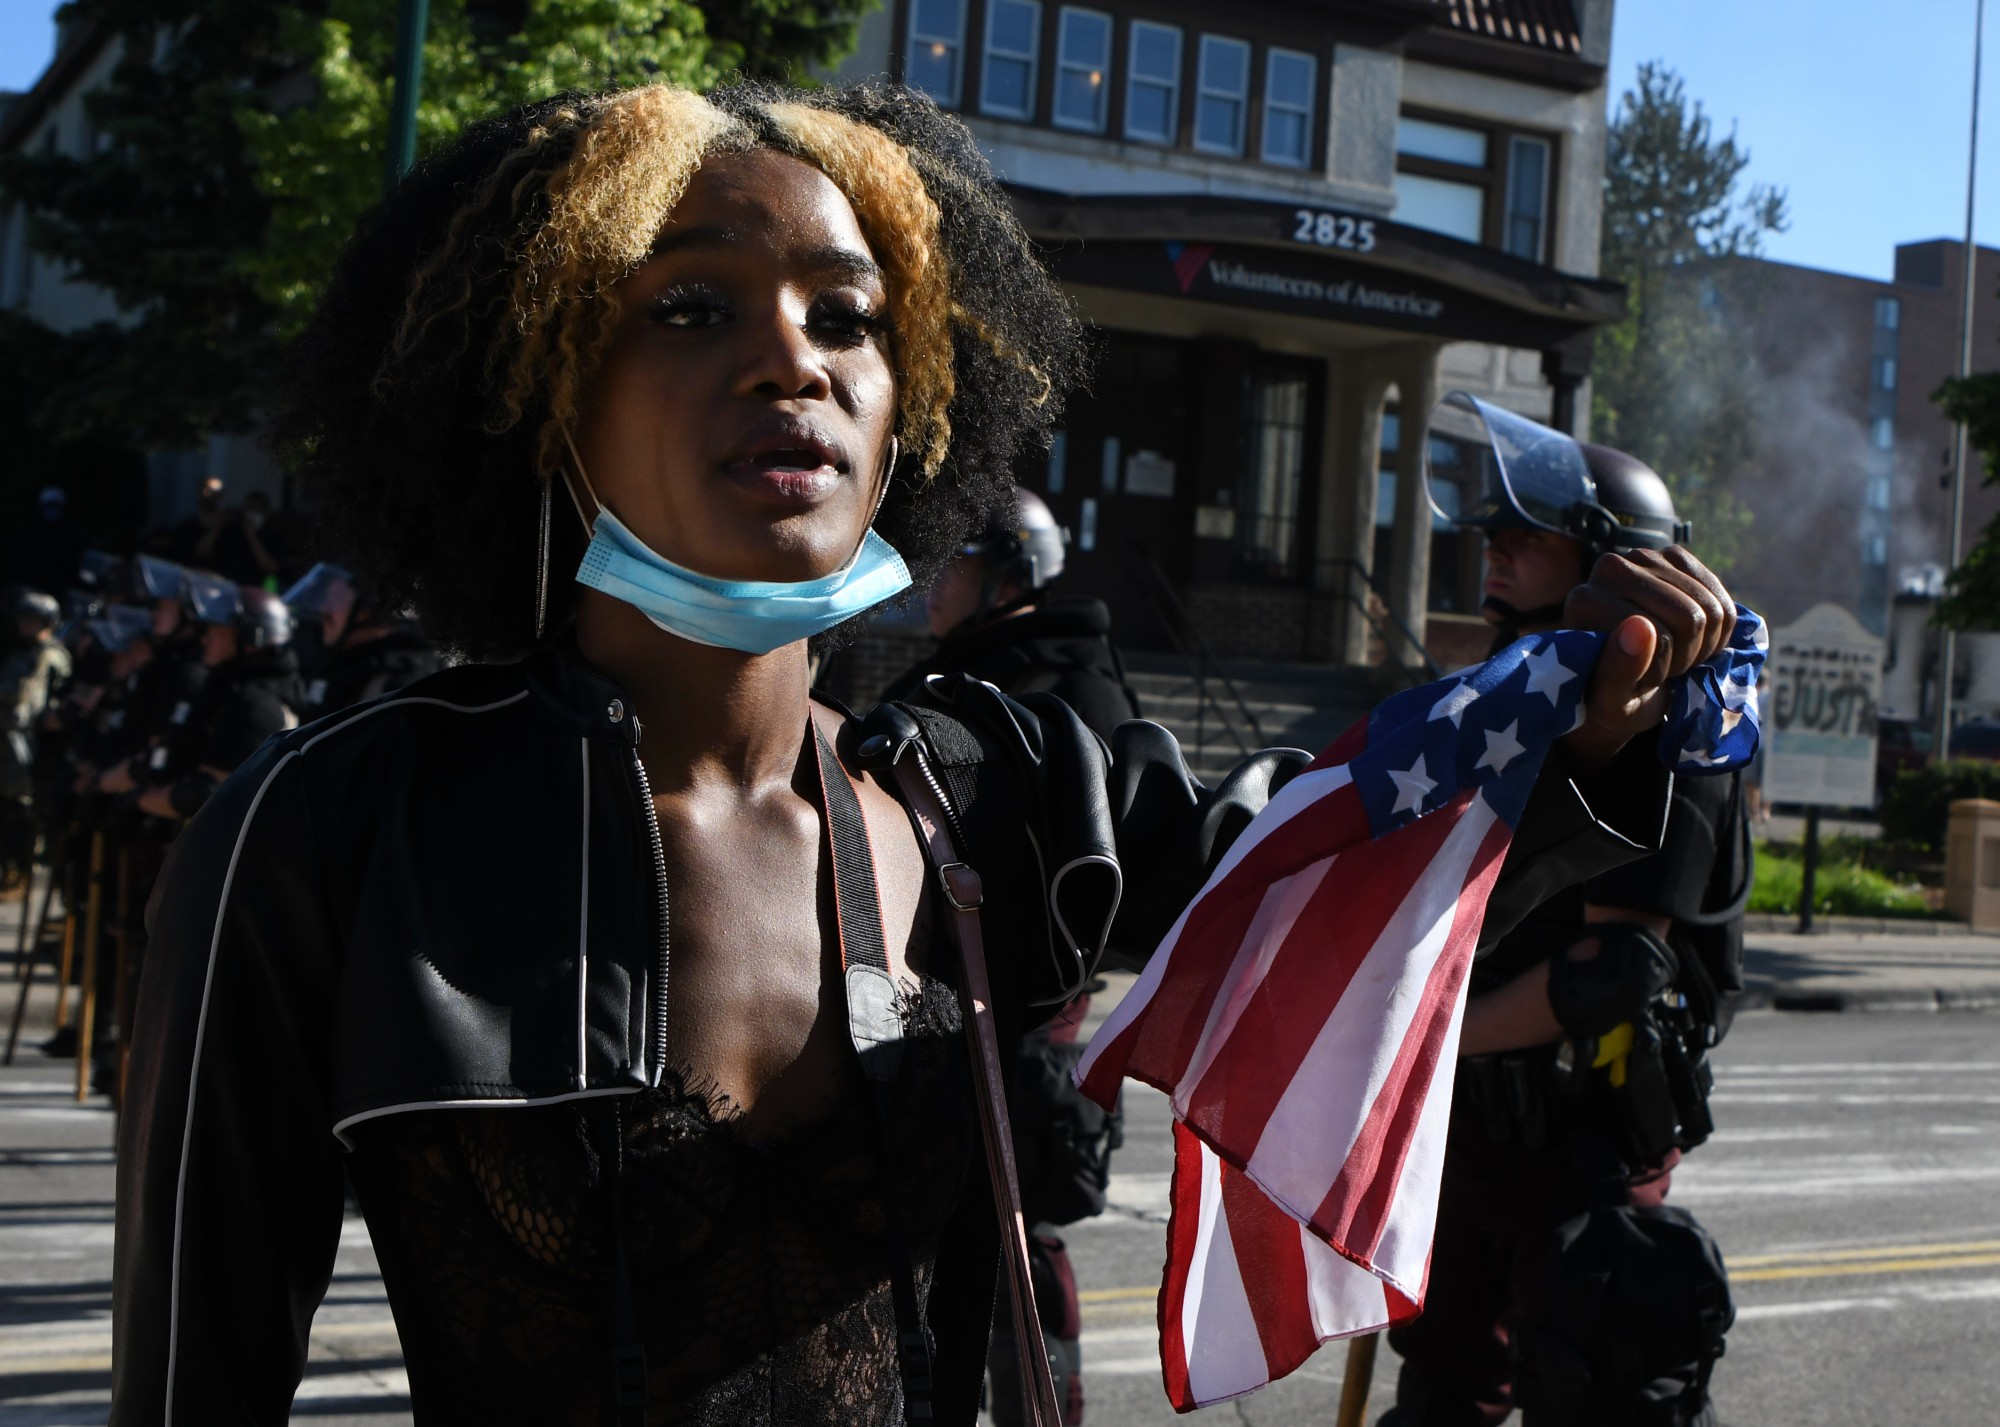 """Akilha Venzant holds an American flag while addressing law enforcement in front of demonstrators on E Lake Street near the MPD 3rd Precinct in Minneapolis on Friday, May 29. While the crowd of demonstrators chanted """"Black Lives Matter"""", Venzant walked along the line addressing each officer, saying """"Black lives matter. They do. They really do."""""""